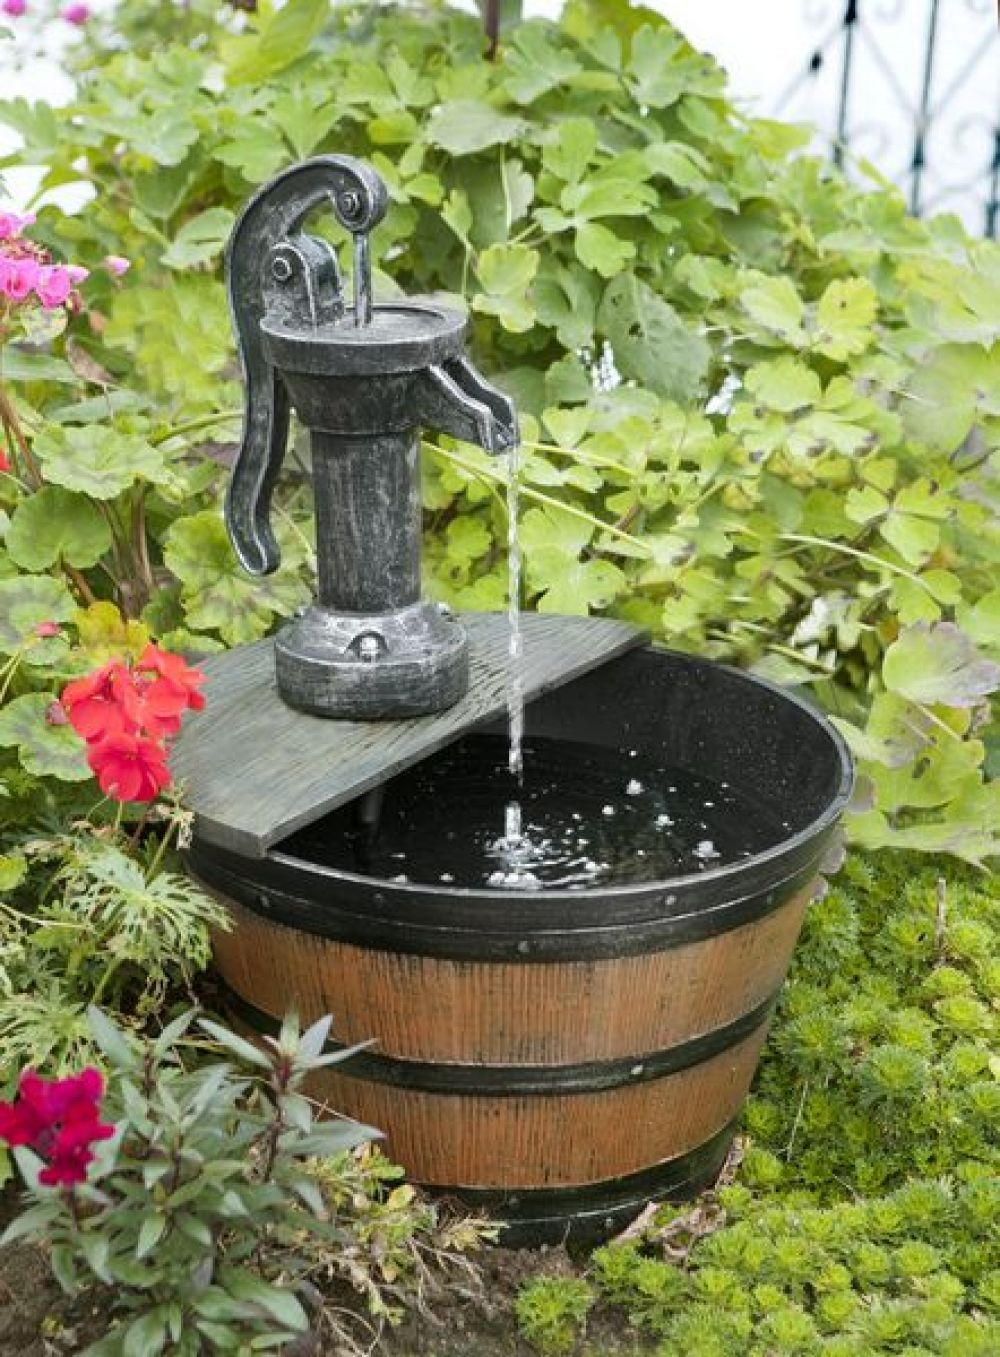 236a976c1423bb7f0f2454dfff6e7d59 - Cheap Solar Powered Water Features Gardens